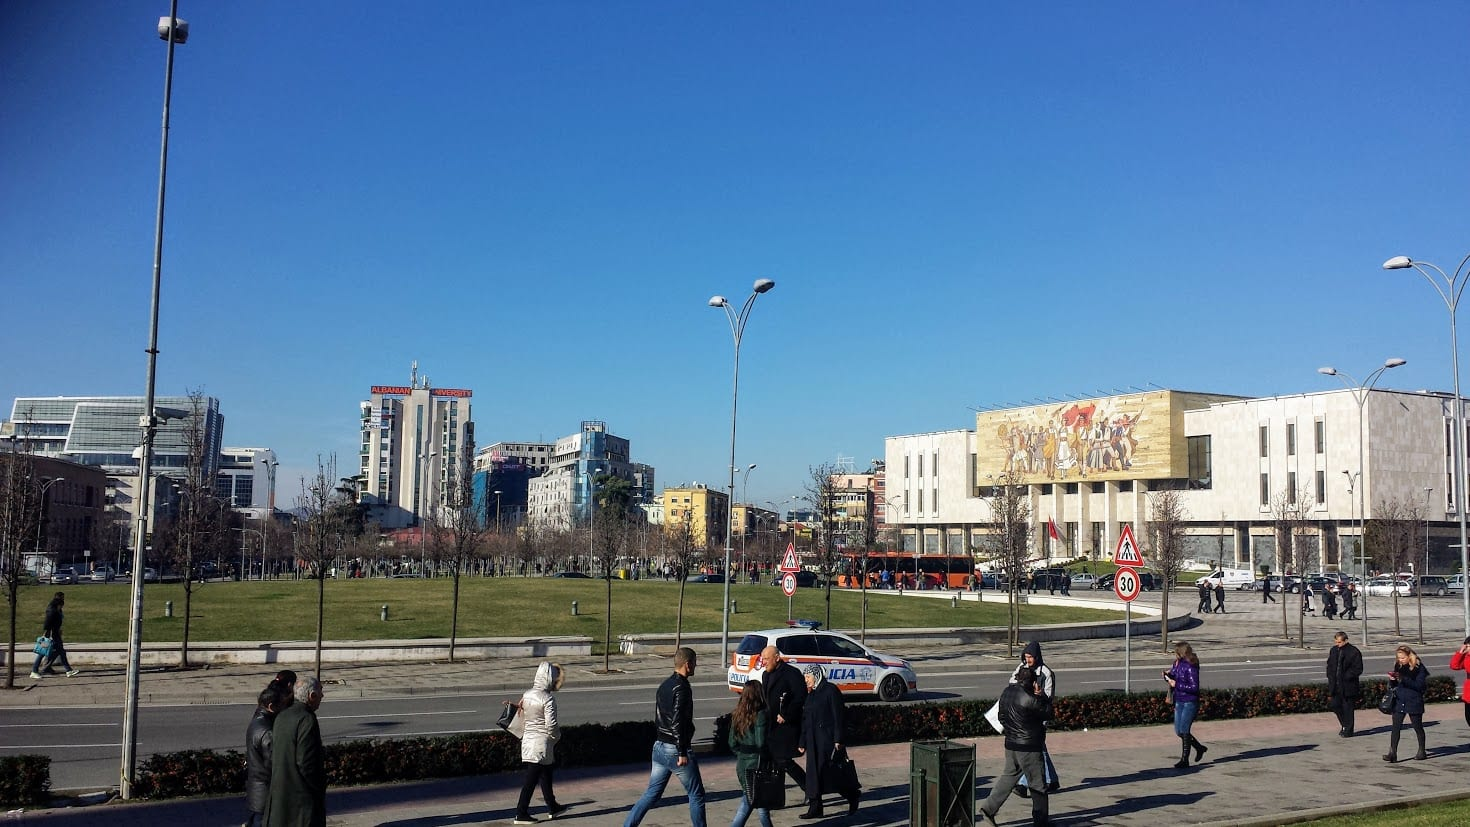 A view over Skanderberg Square in Tirana, Albania. This is the central point for Tirana city centre.